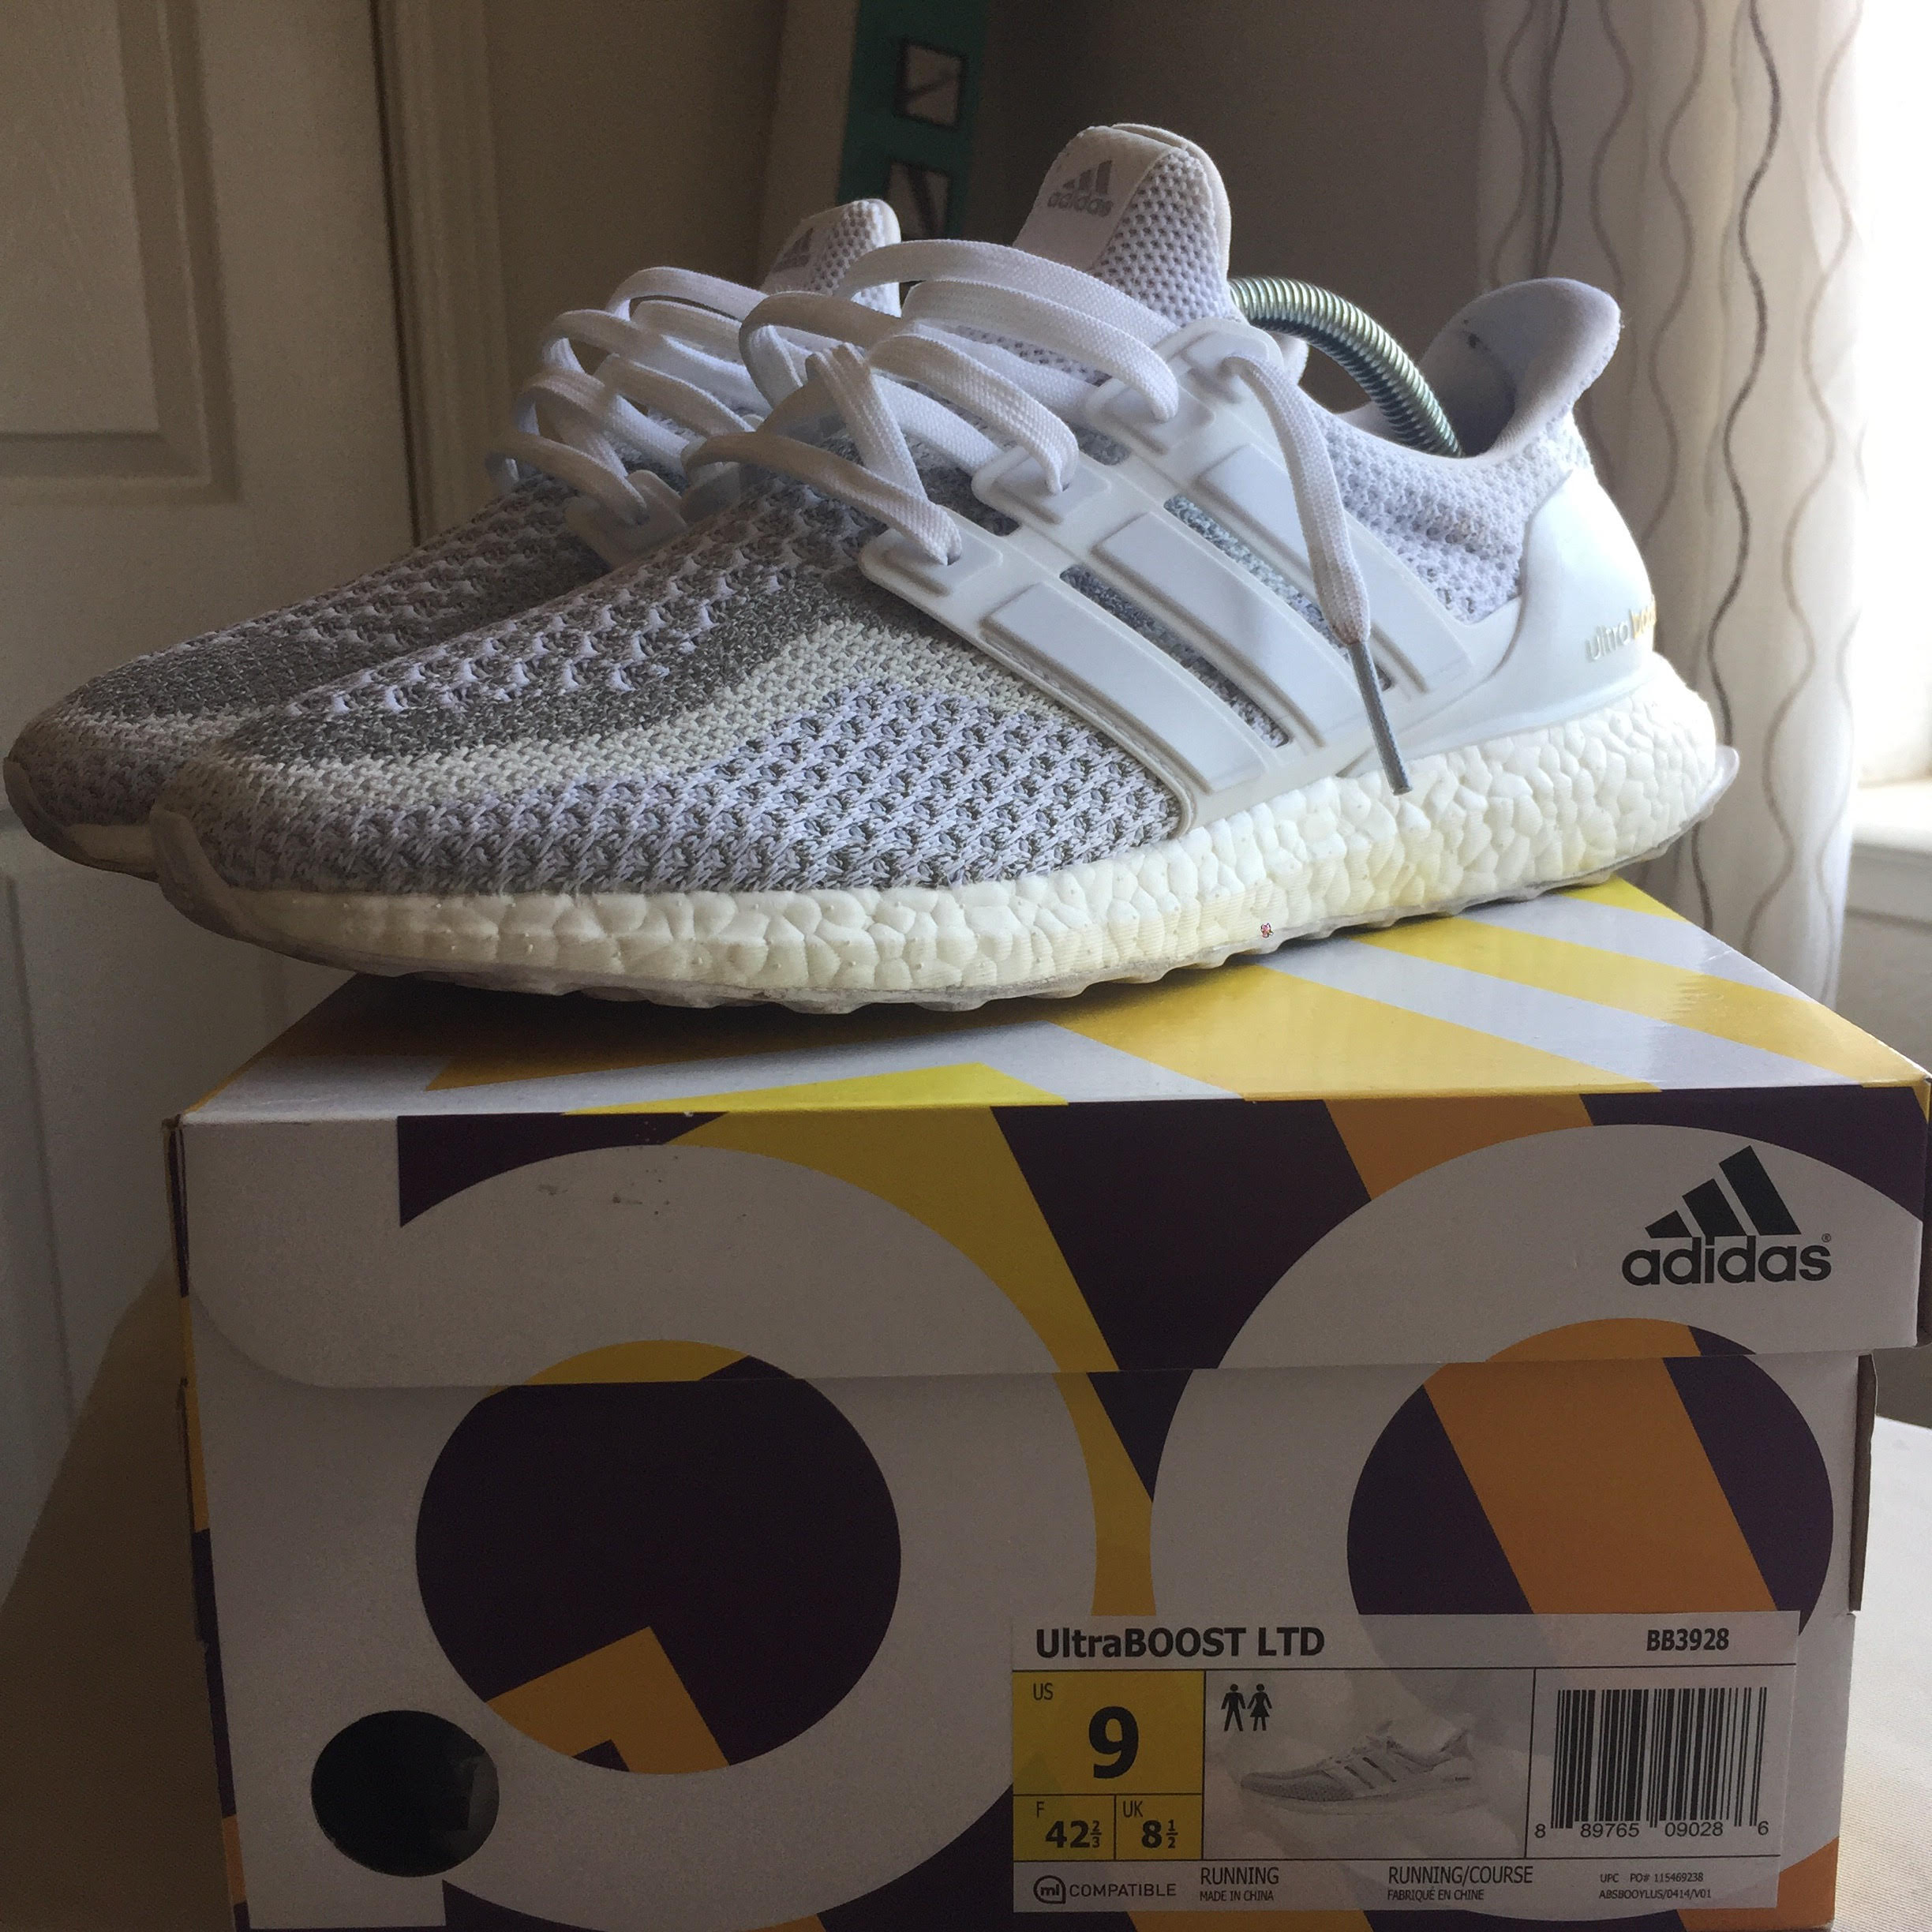 Adidas Adidas Ultra Boost 2.0 3M Reflective Triple White Size 9 - Low-Top  Sneakers for Sale - Grailed 48539744b